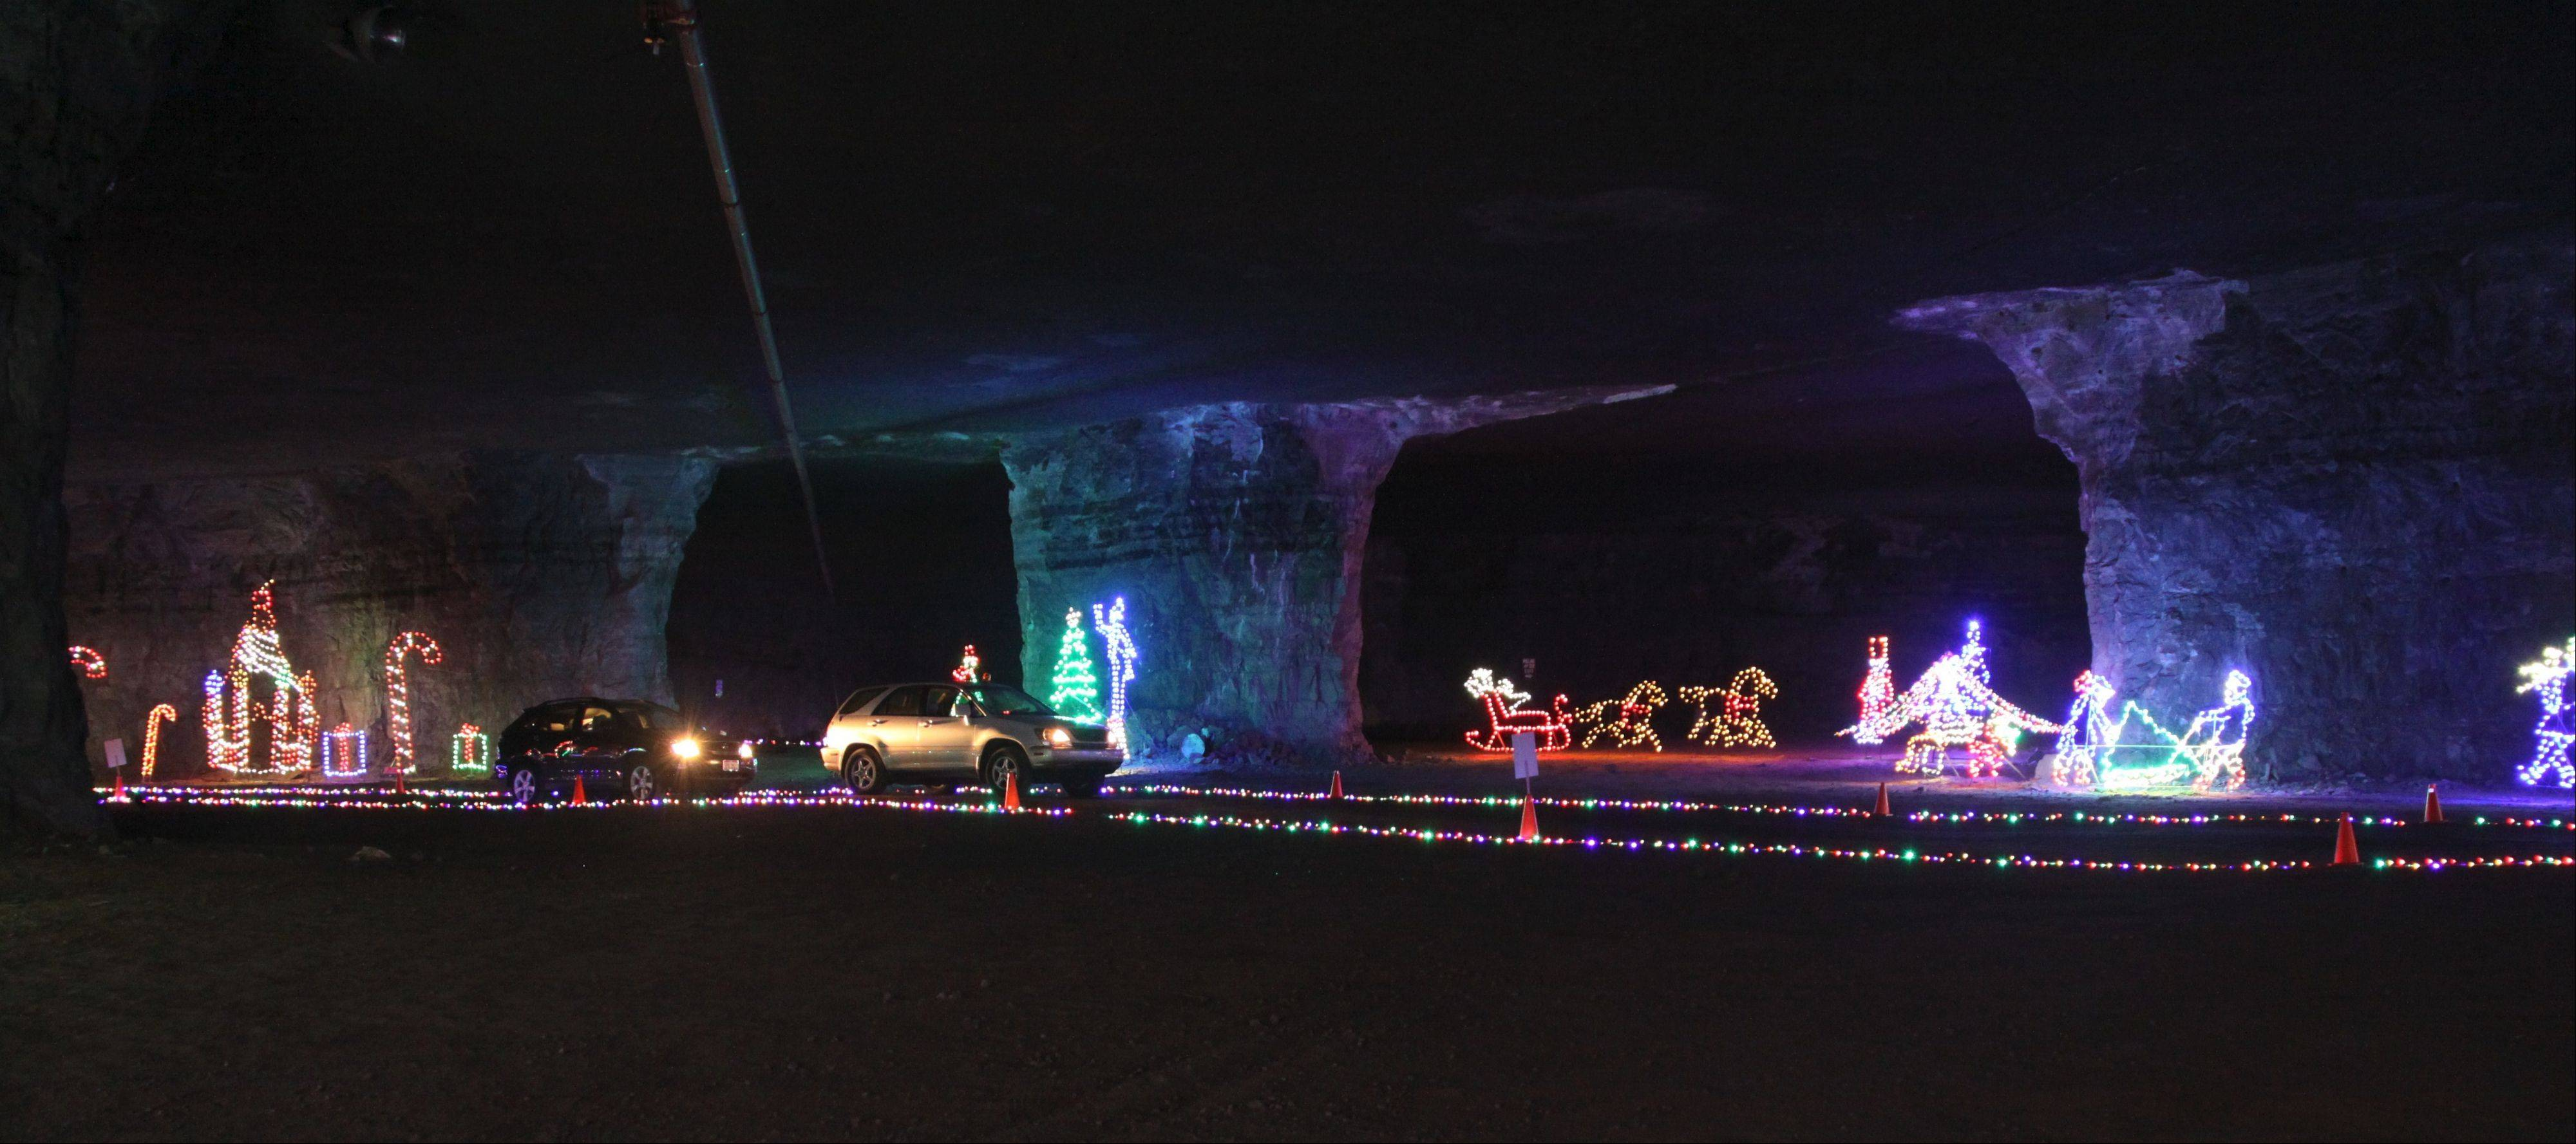 Drive your car through an underground light show in the Louisville MEGA Cavern in Kentucky.